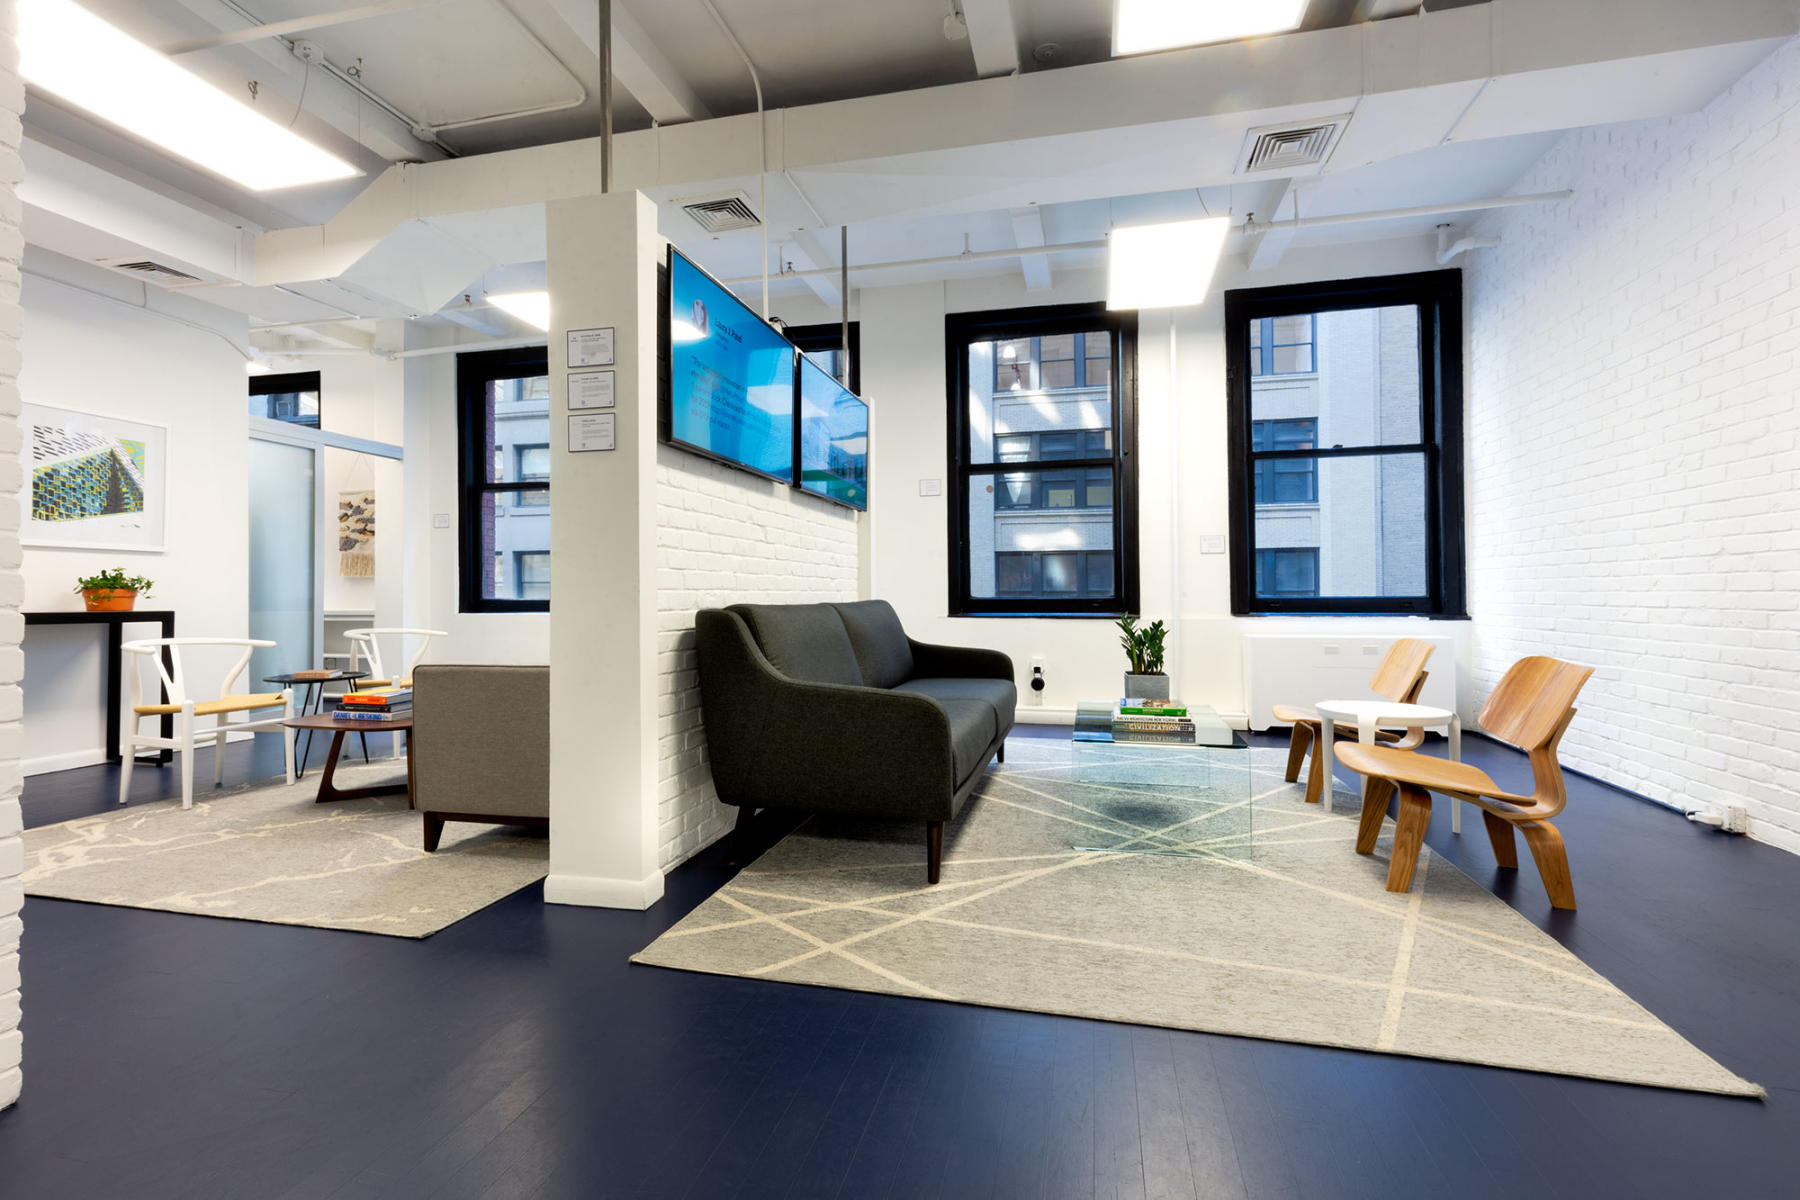 Metaprop NYC  : Miscellanous Projects : New York NY Architectural Photographer | Interior and Exterior